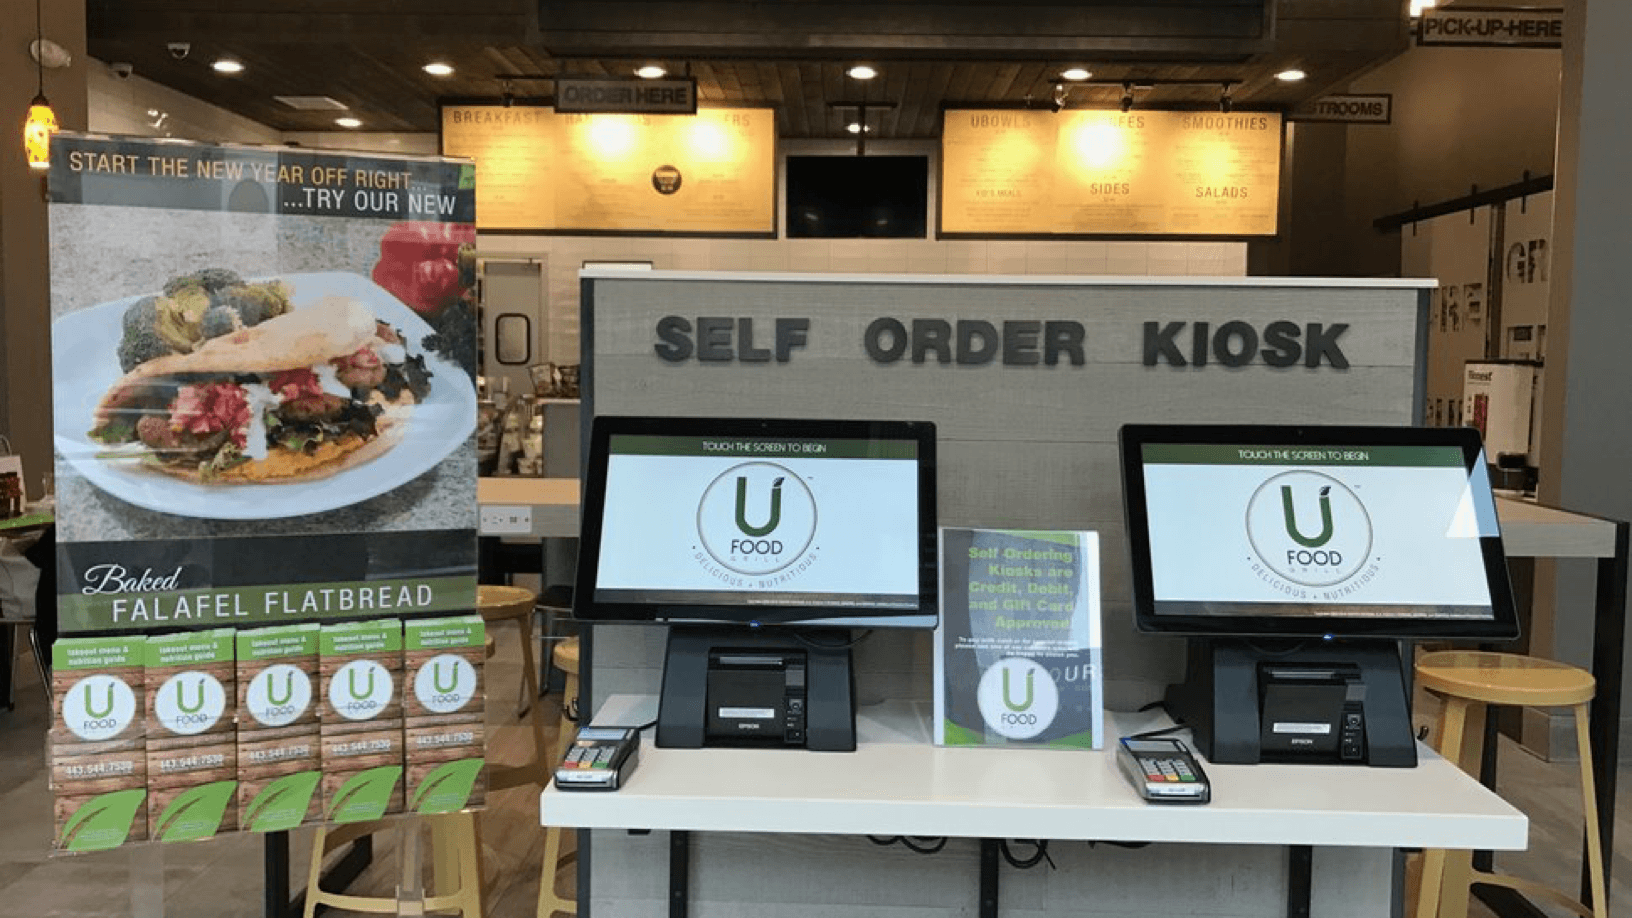 UFood Facial Recognition Kiosk